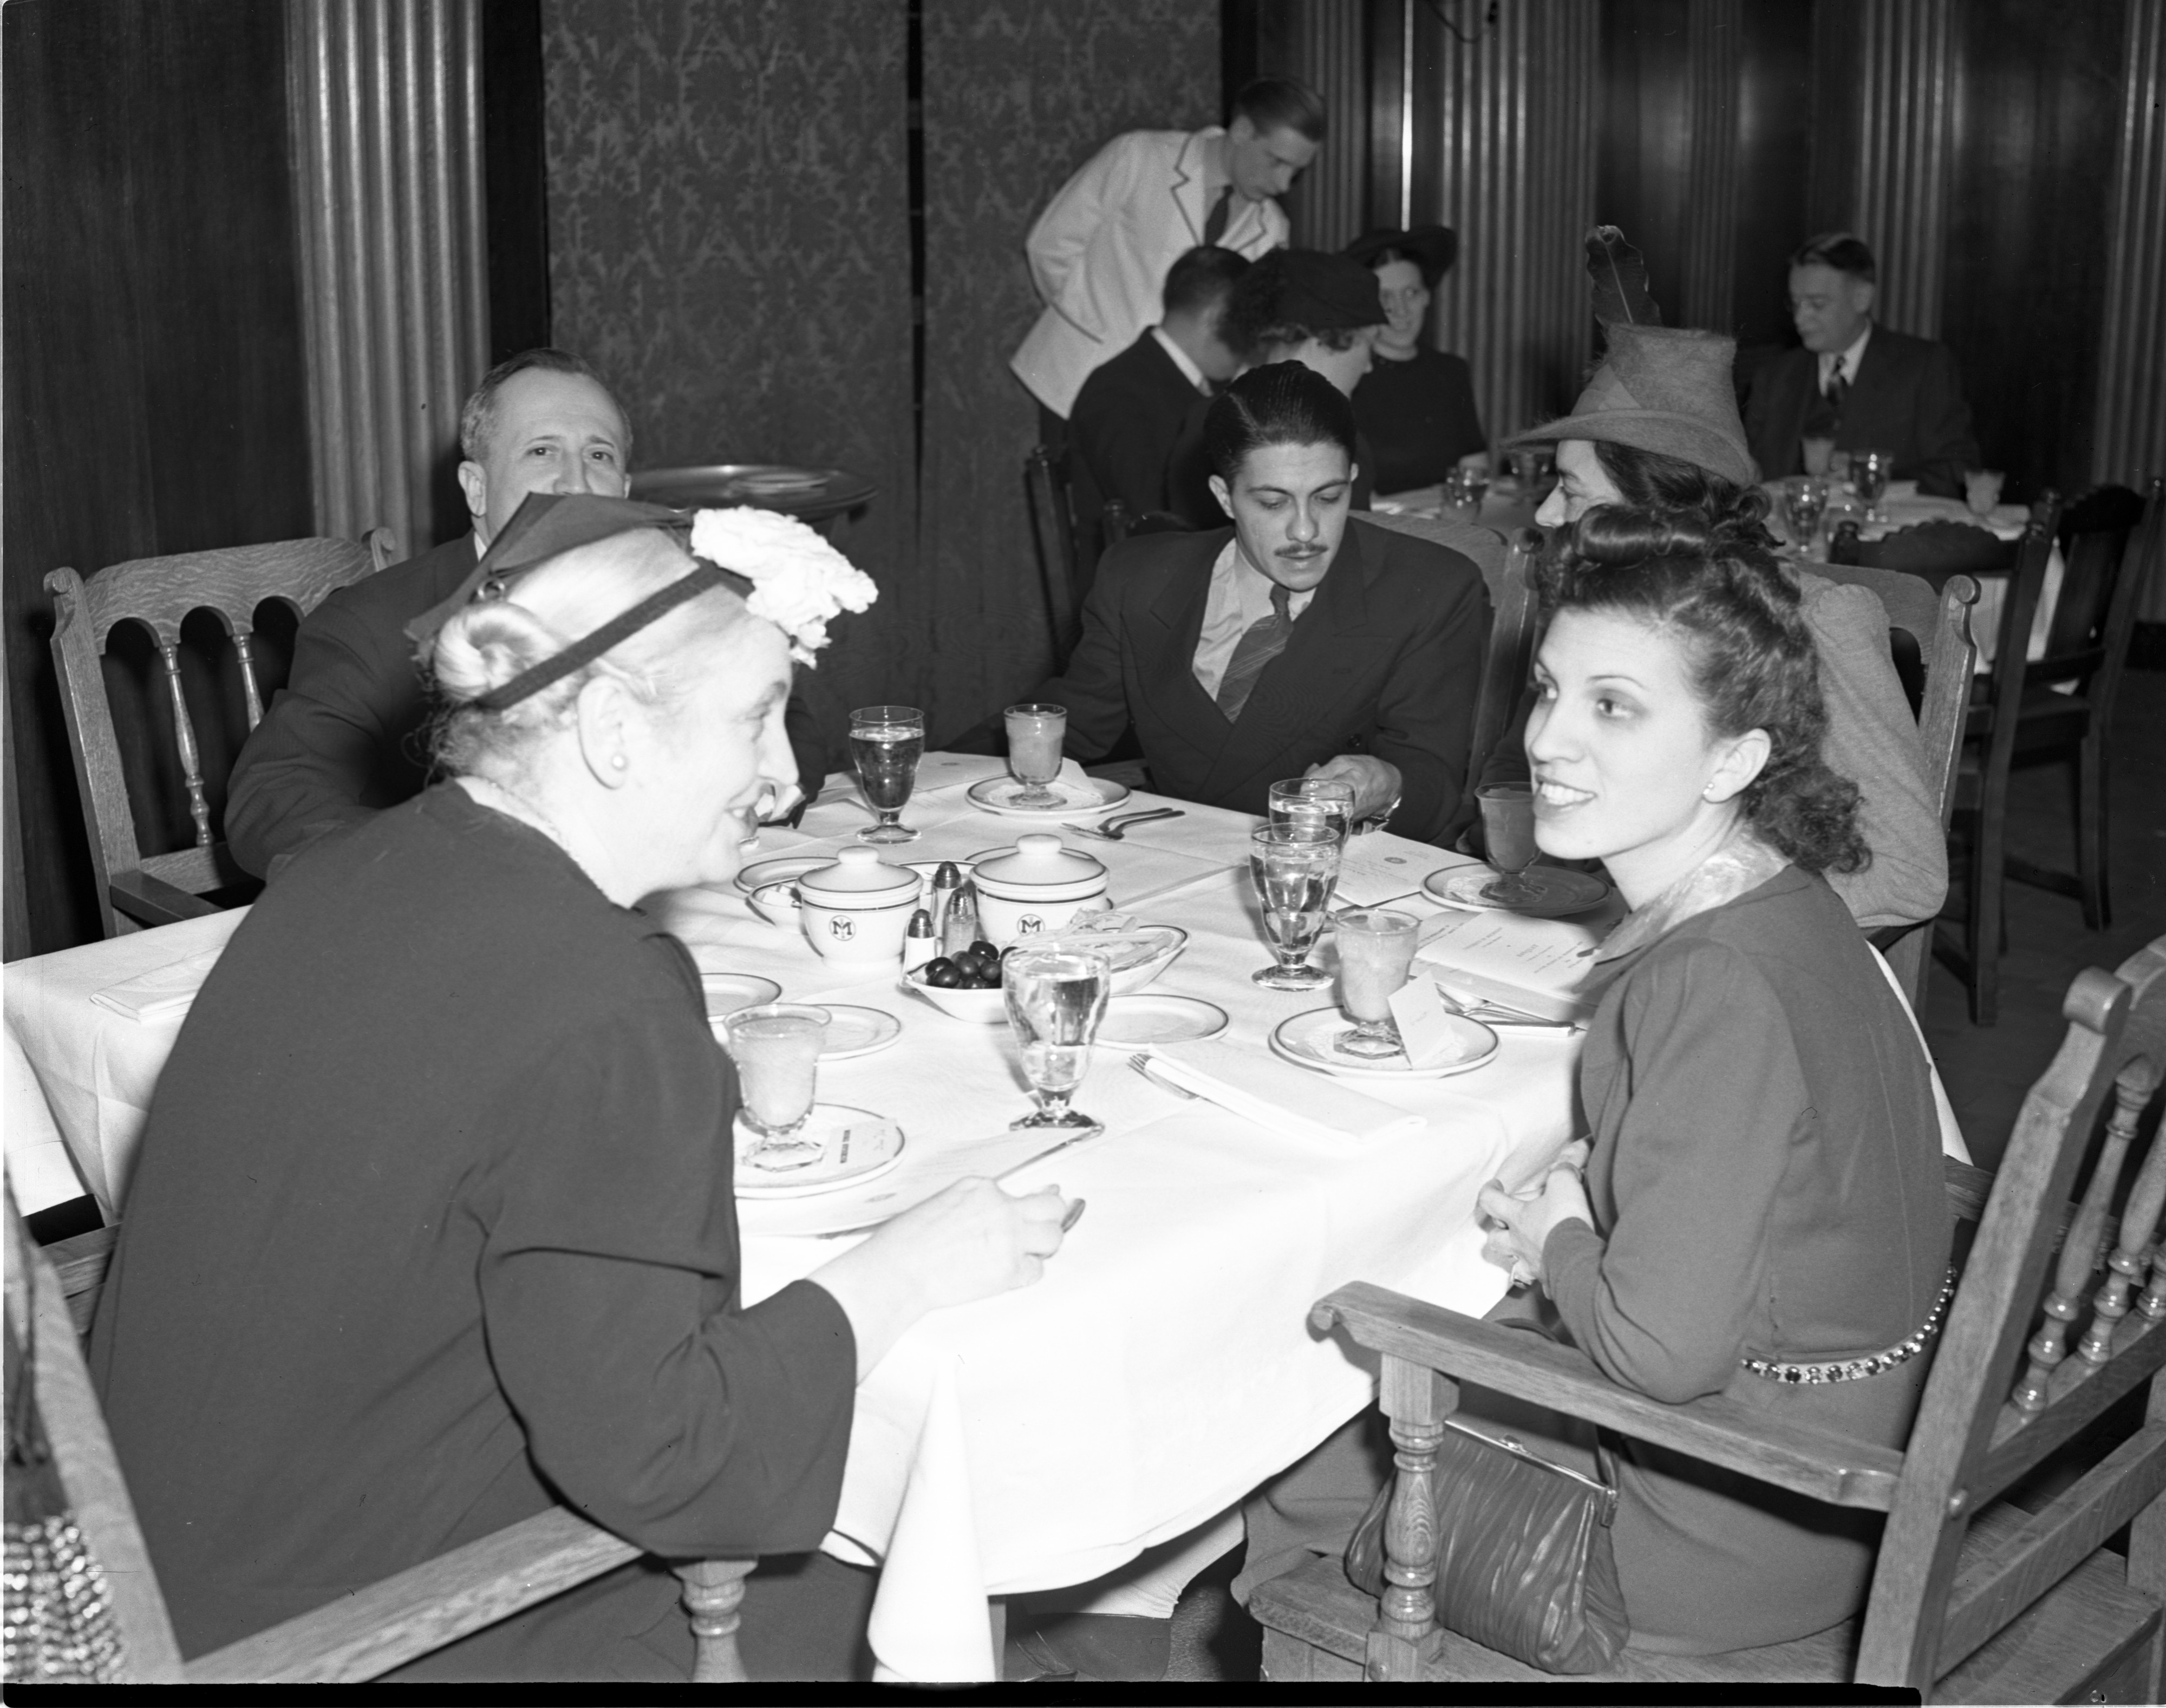 Student From South America On Right Talks To Marguerite del Toro At The Michigan Union, 1941 image